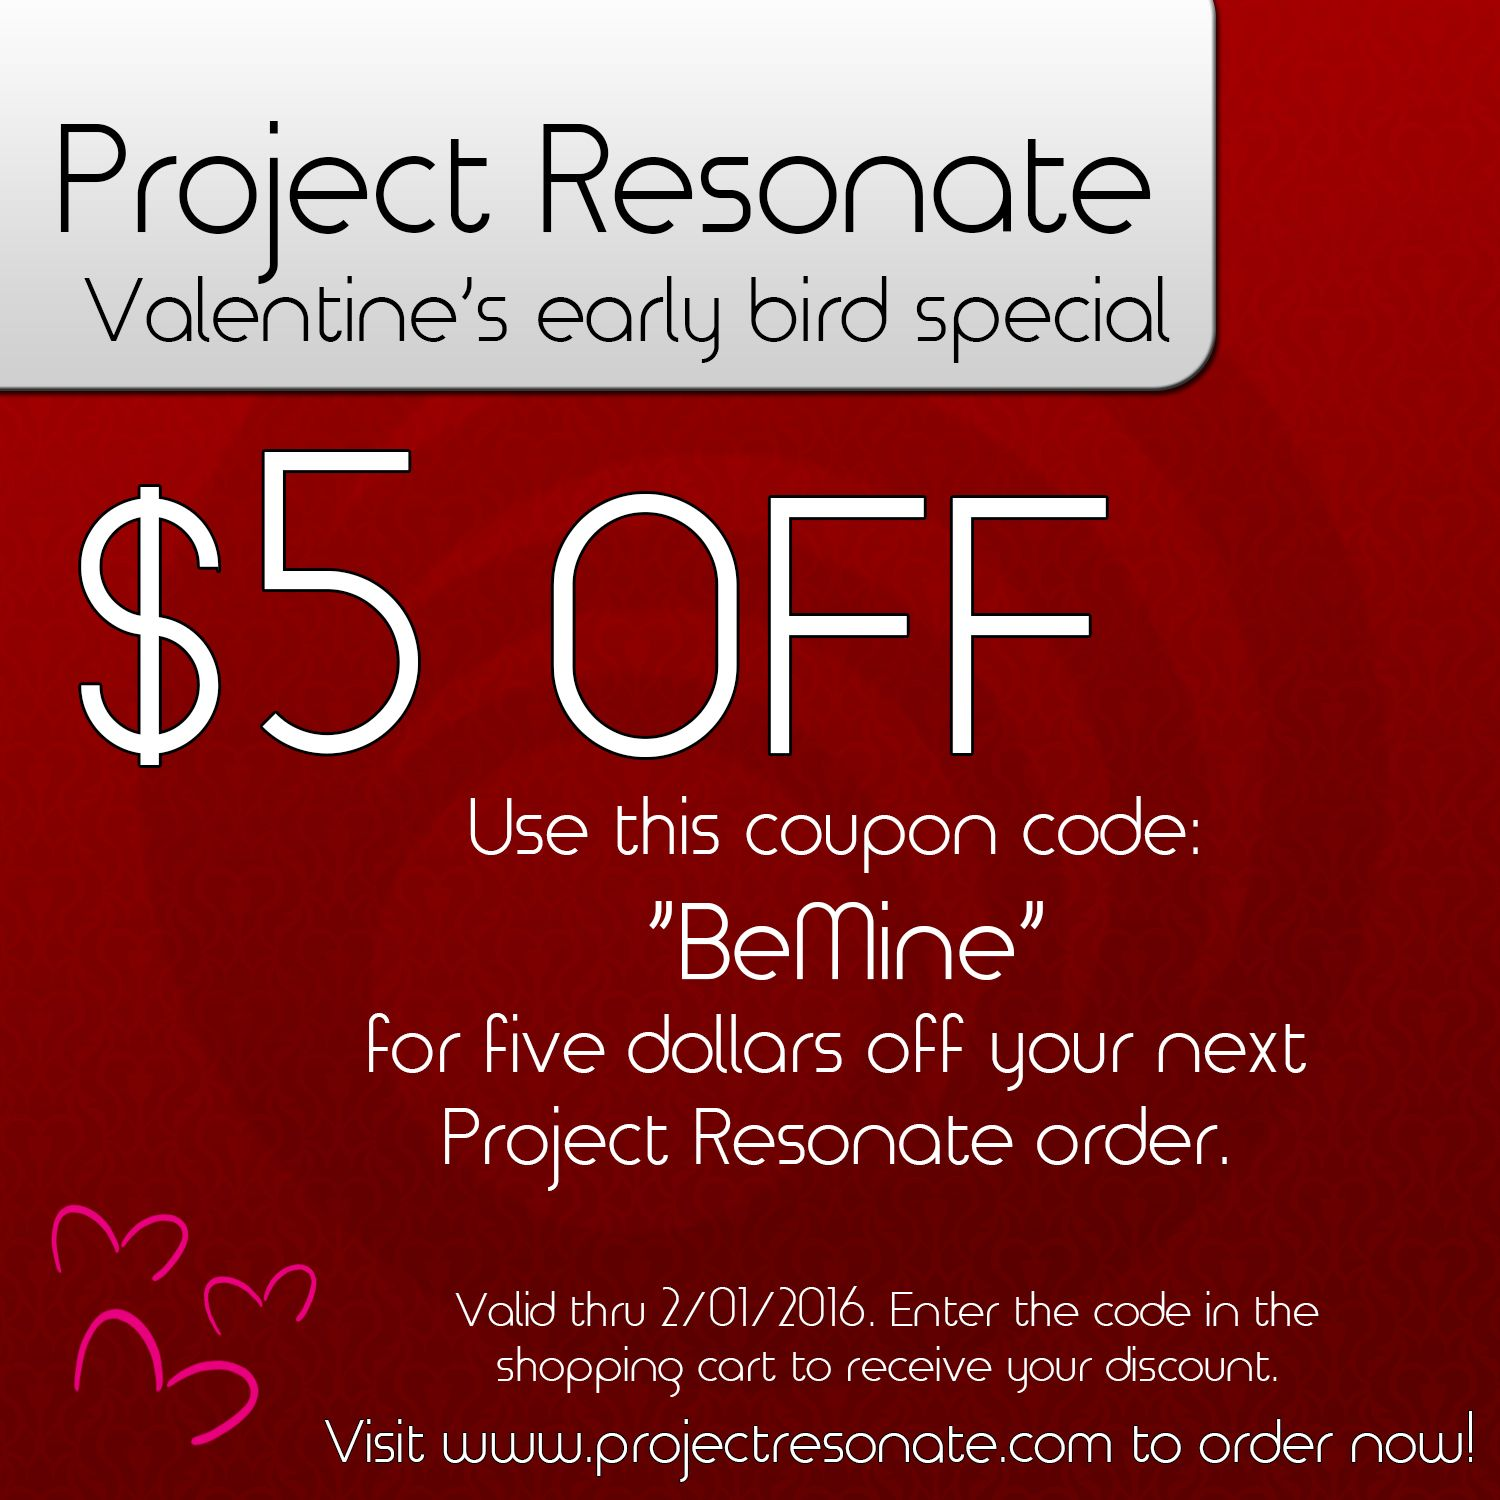 Project Resonate early bird special! Get your order in and save $5! #ValentinesDay #giftidea